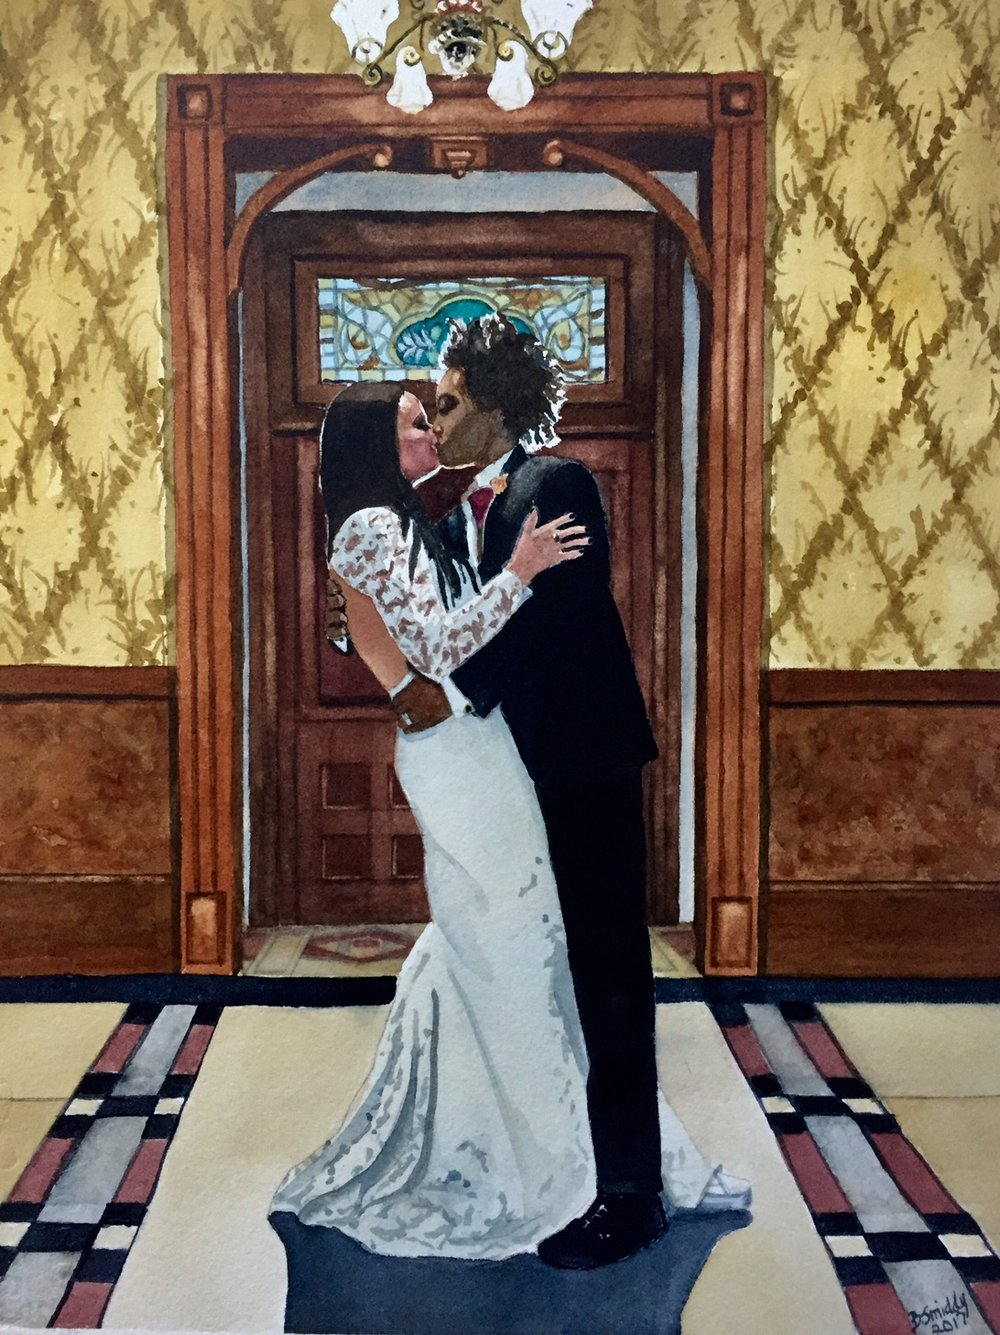 Wedding anniversary 1 year gift custom paintingmarriage